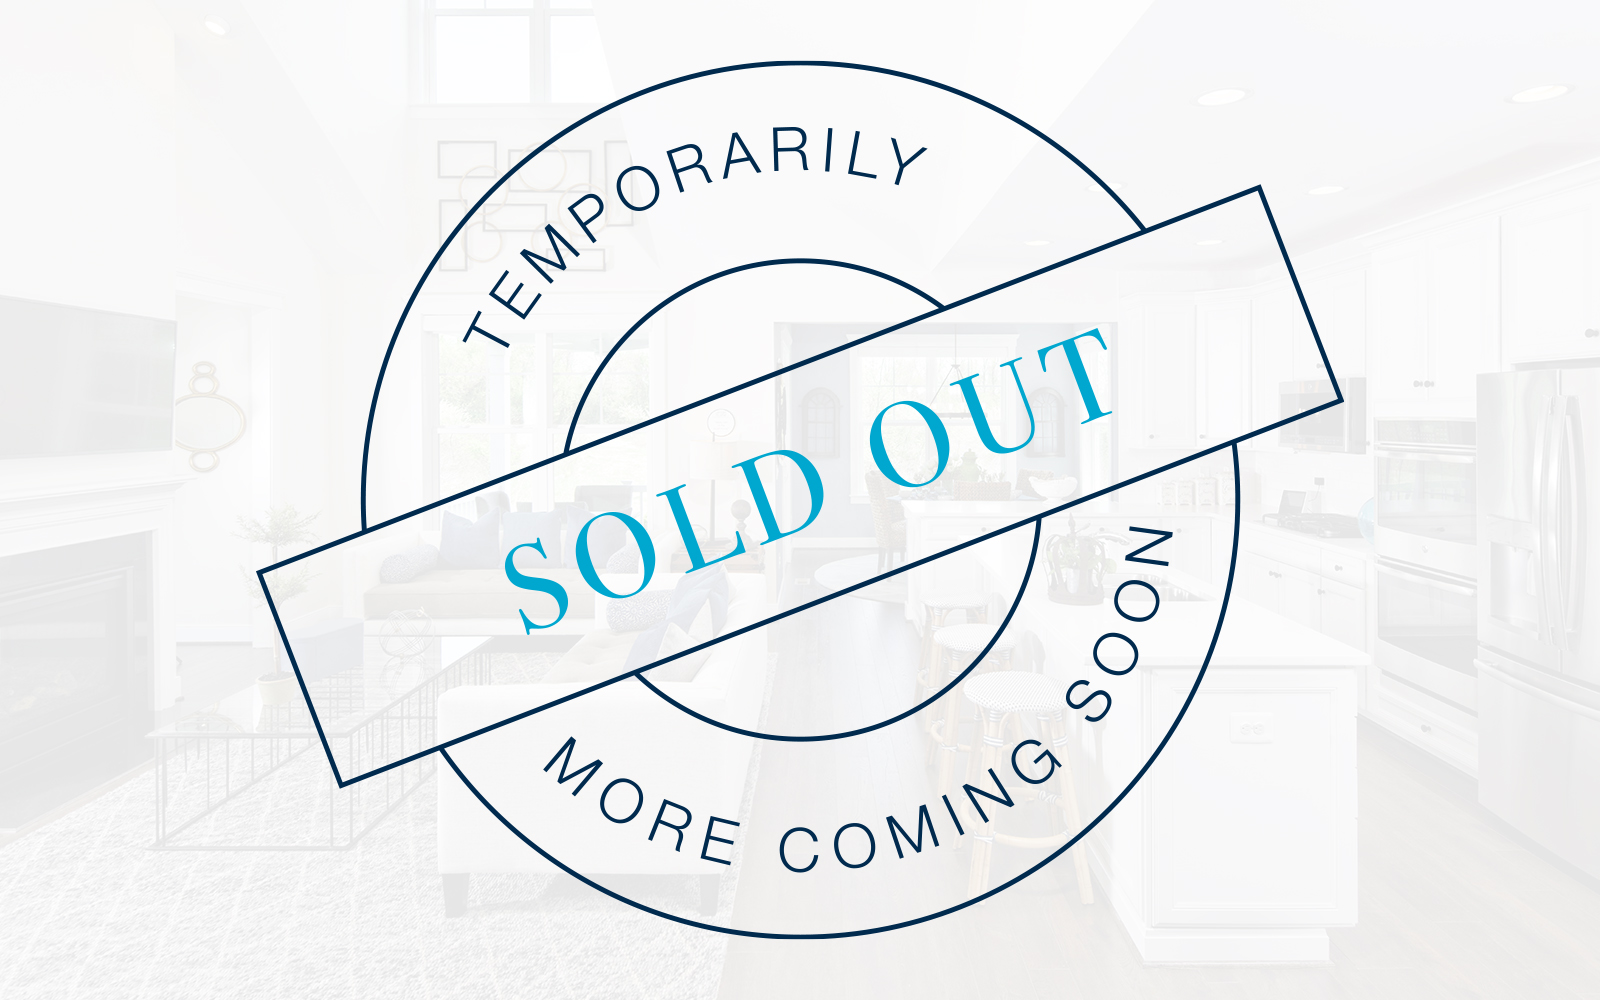 Temporarily sold out image.